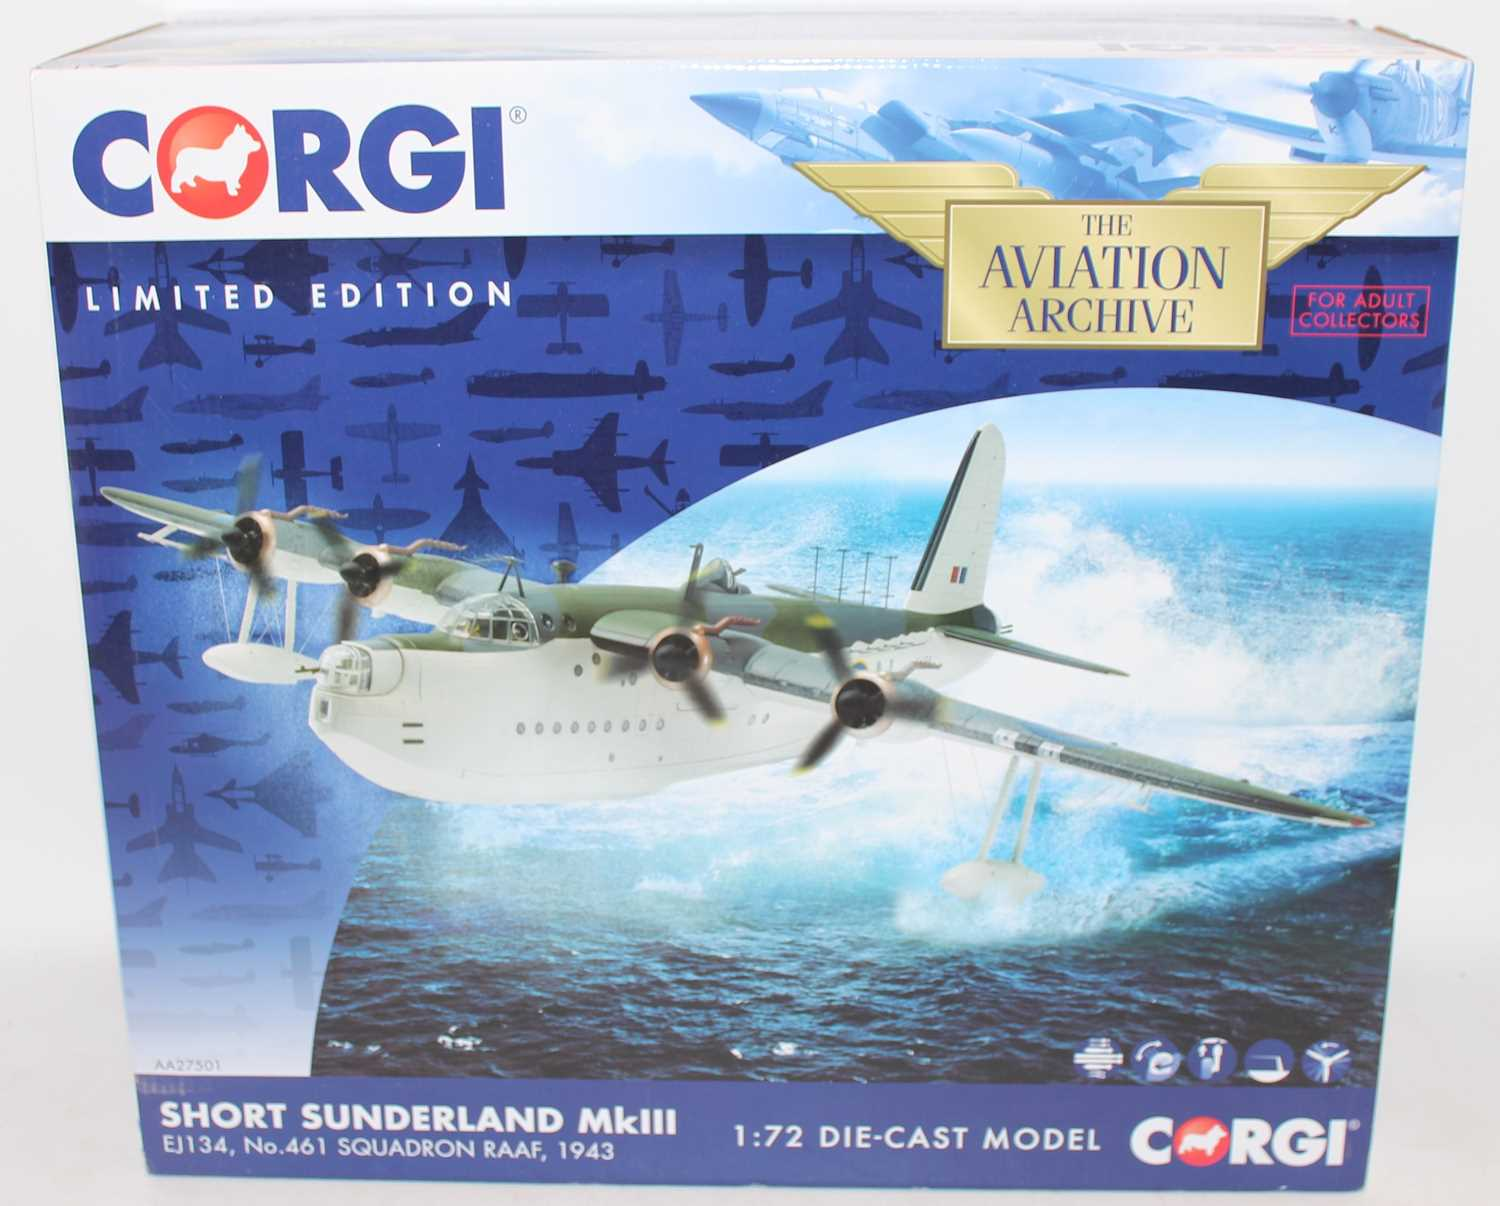 A Corgi Aviation Archive model No. AA27501 1/72 scale limited edition diecast model of a Short